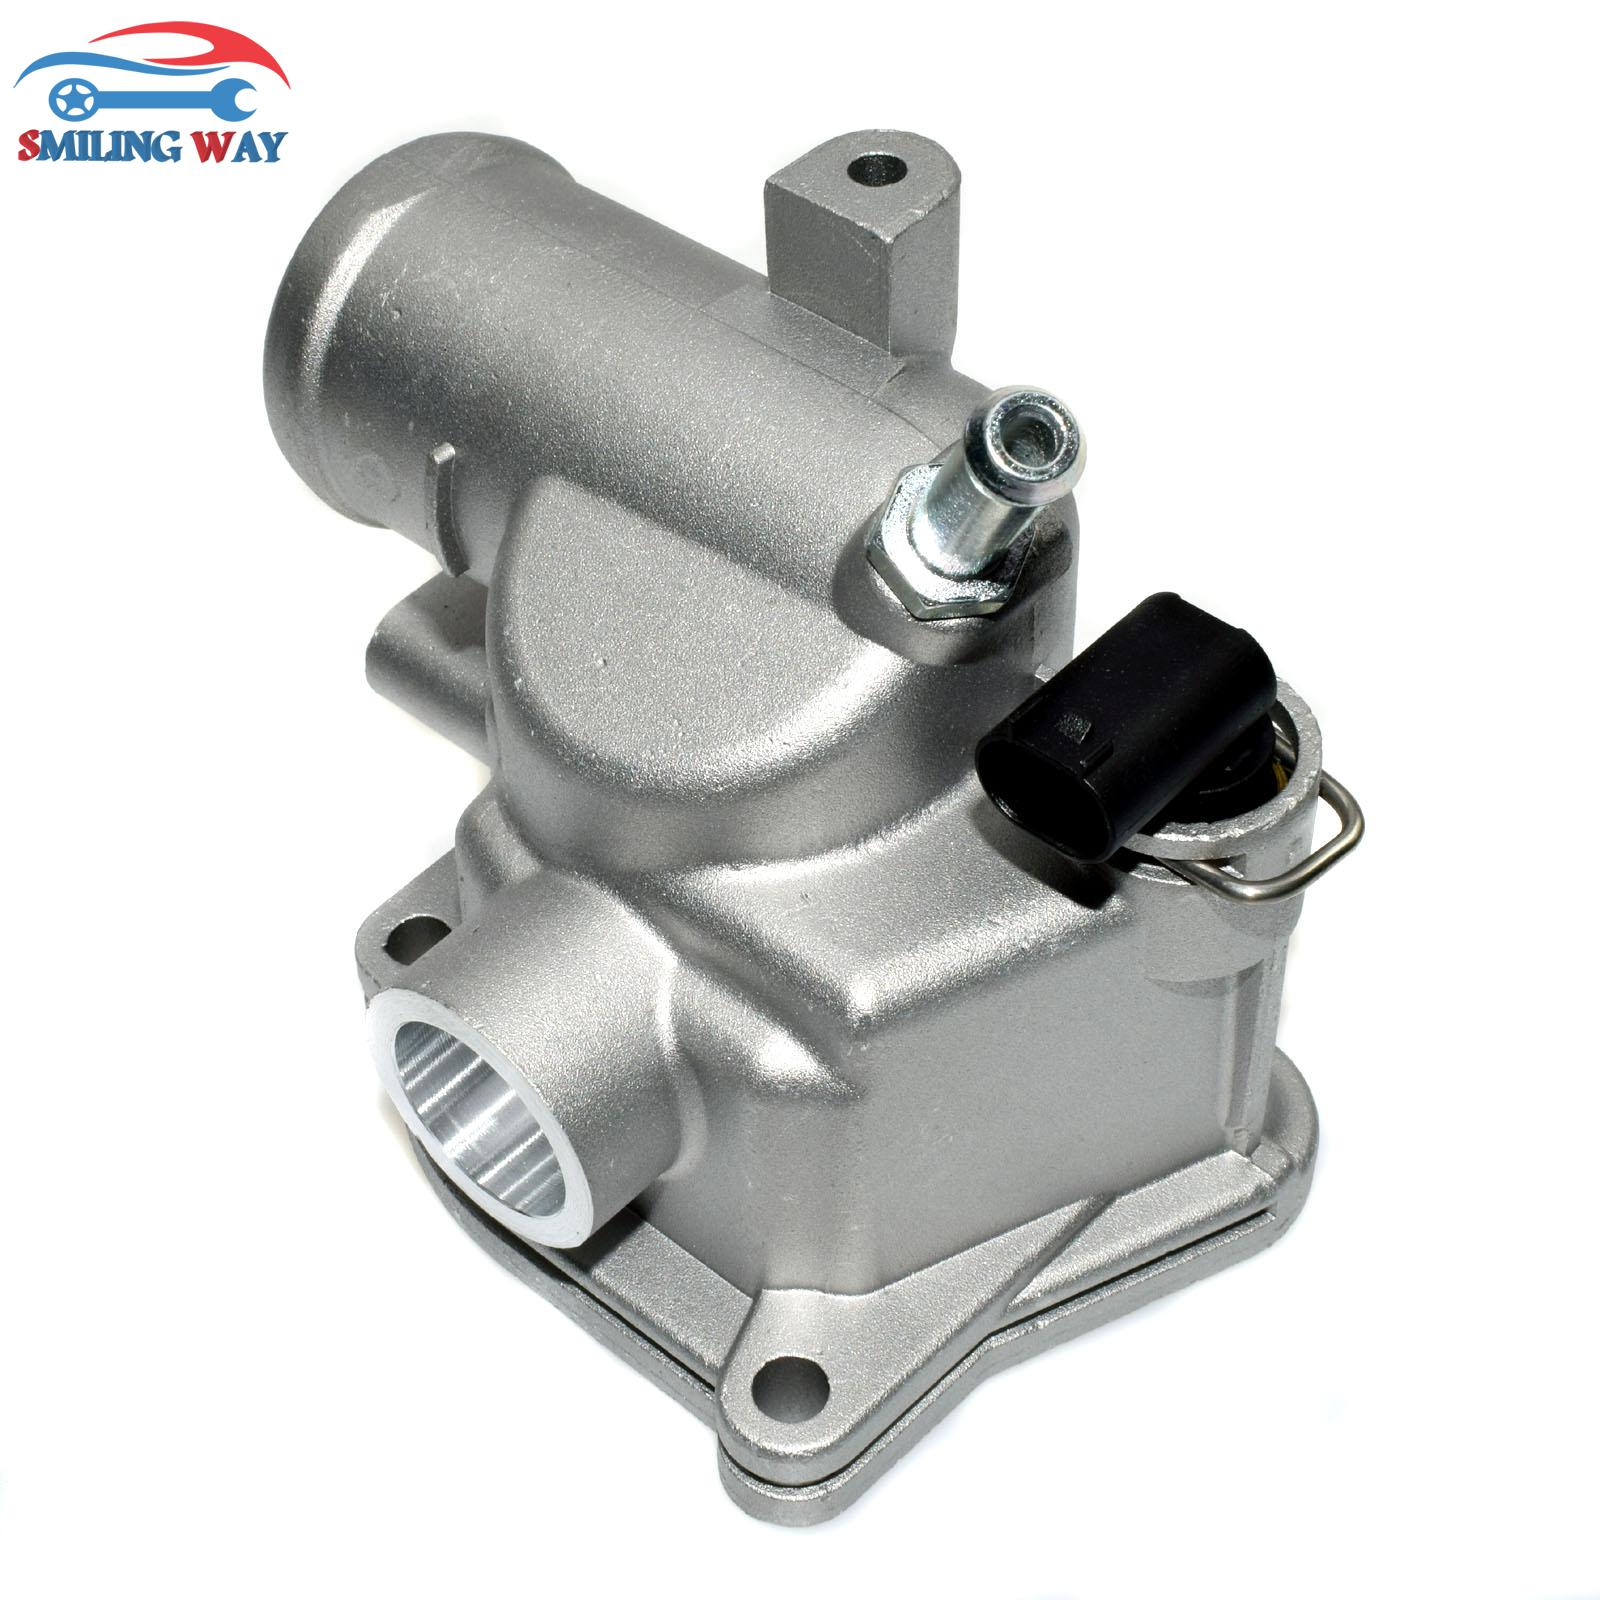 medium resolution of smiling way engine coolant thermostat for mercedes benz w202 s202 c class e class c200 e200 c36 amg oe 6112000015 6112030075